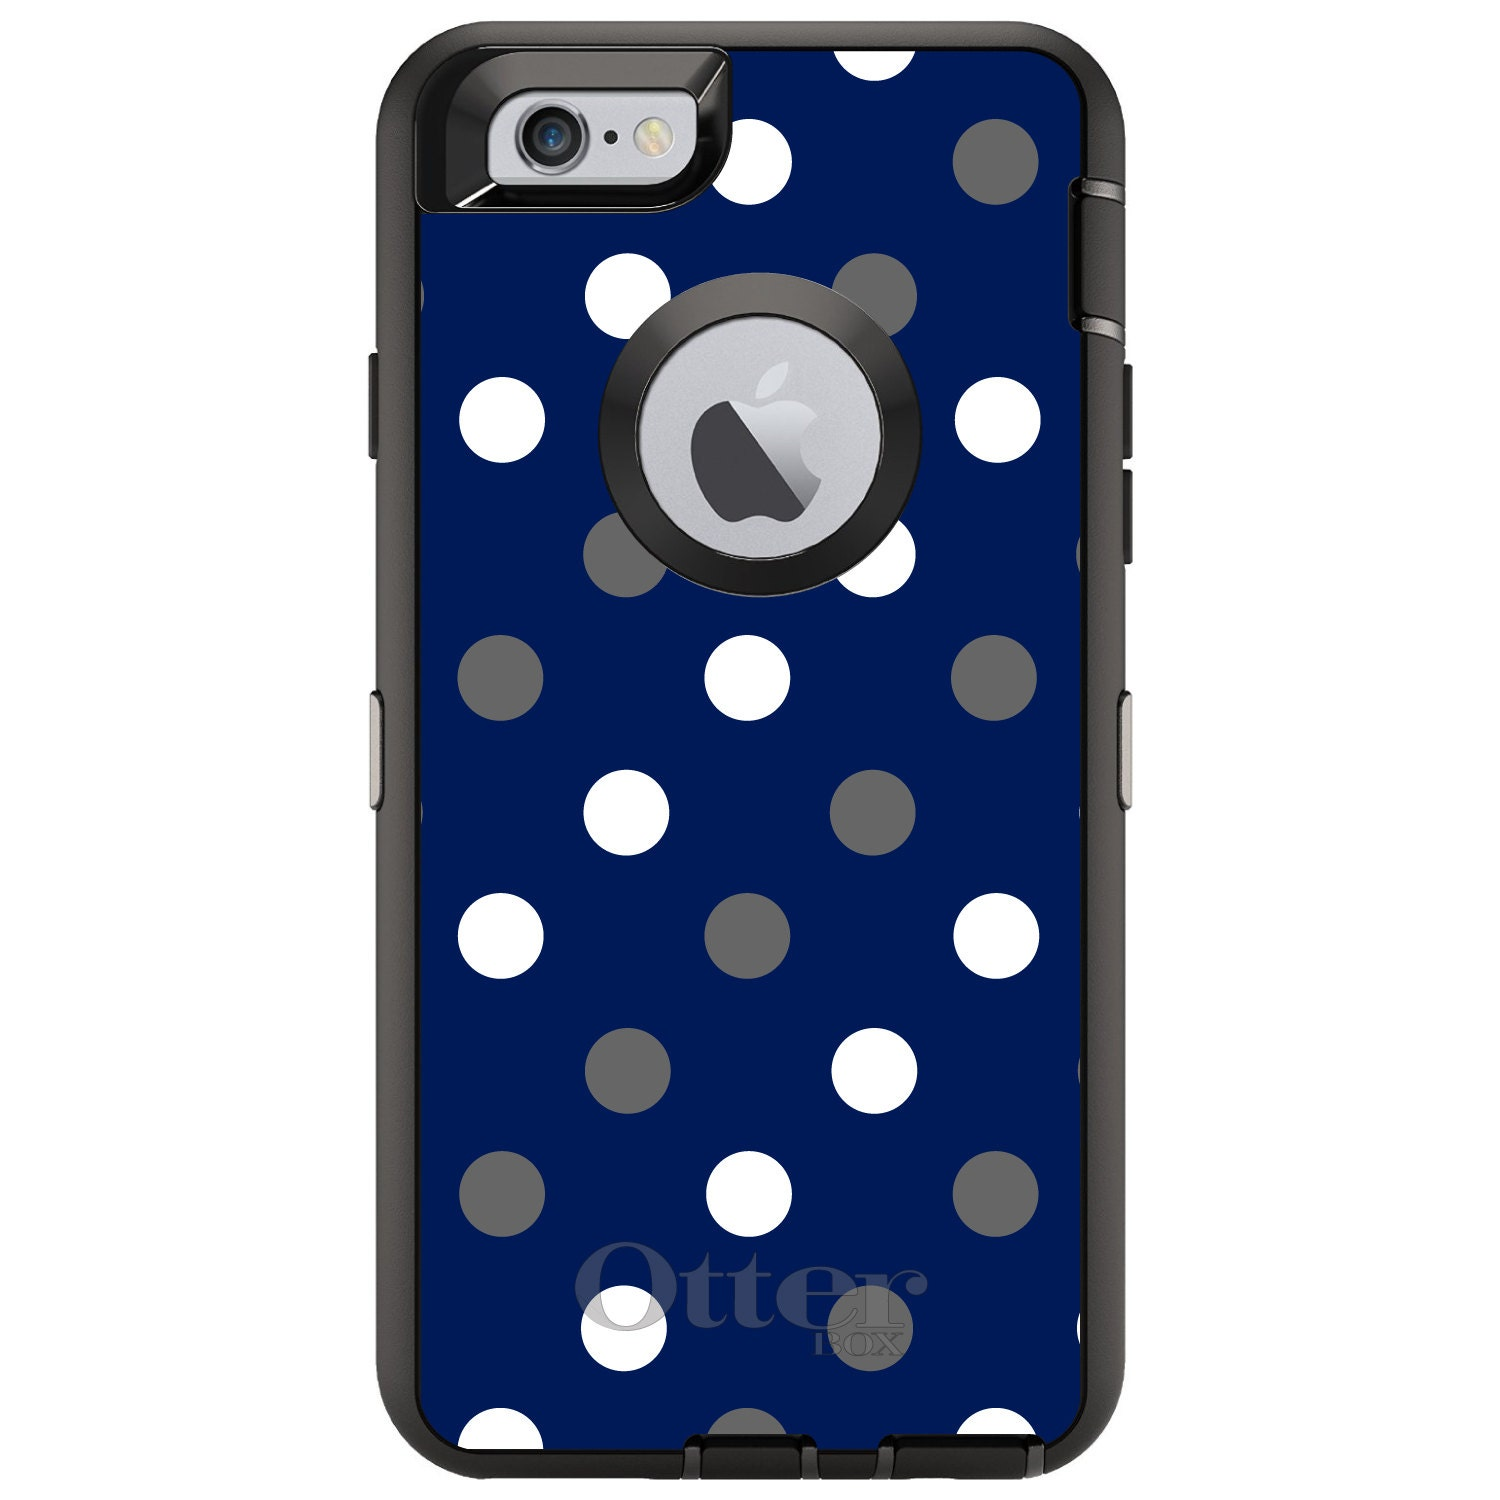 customized iphone cases custom otterbox defender for apple iphone 6 6s 7 6199